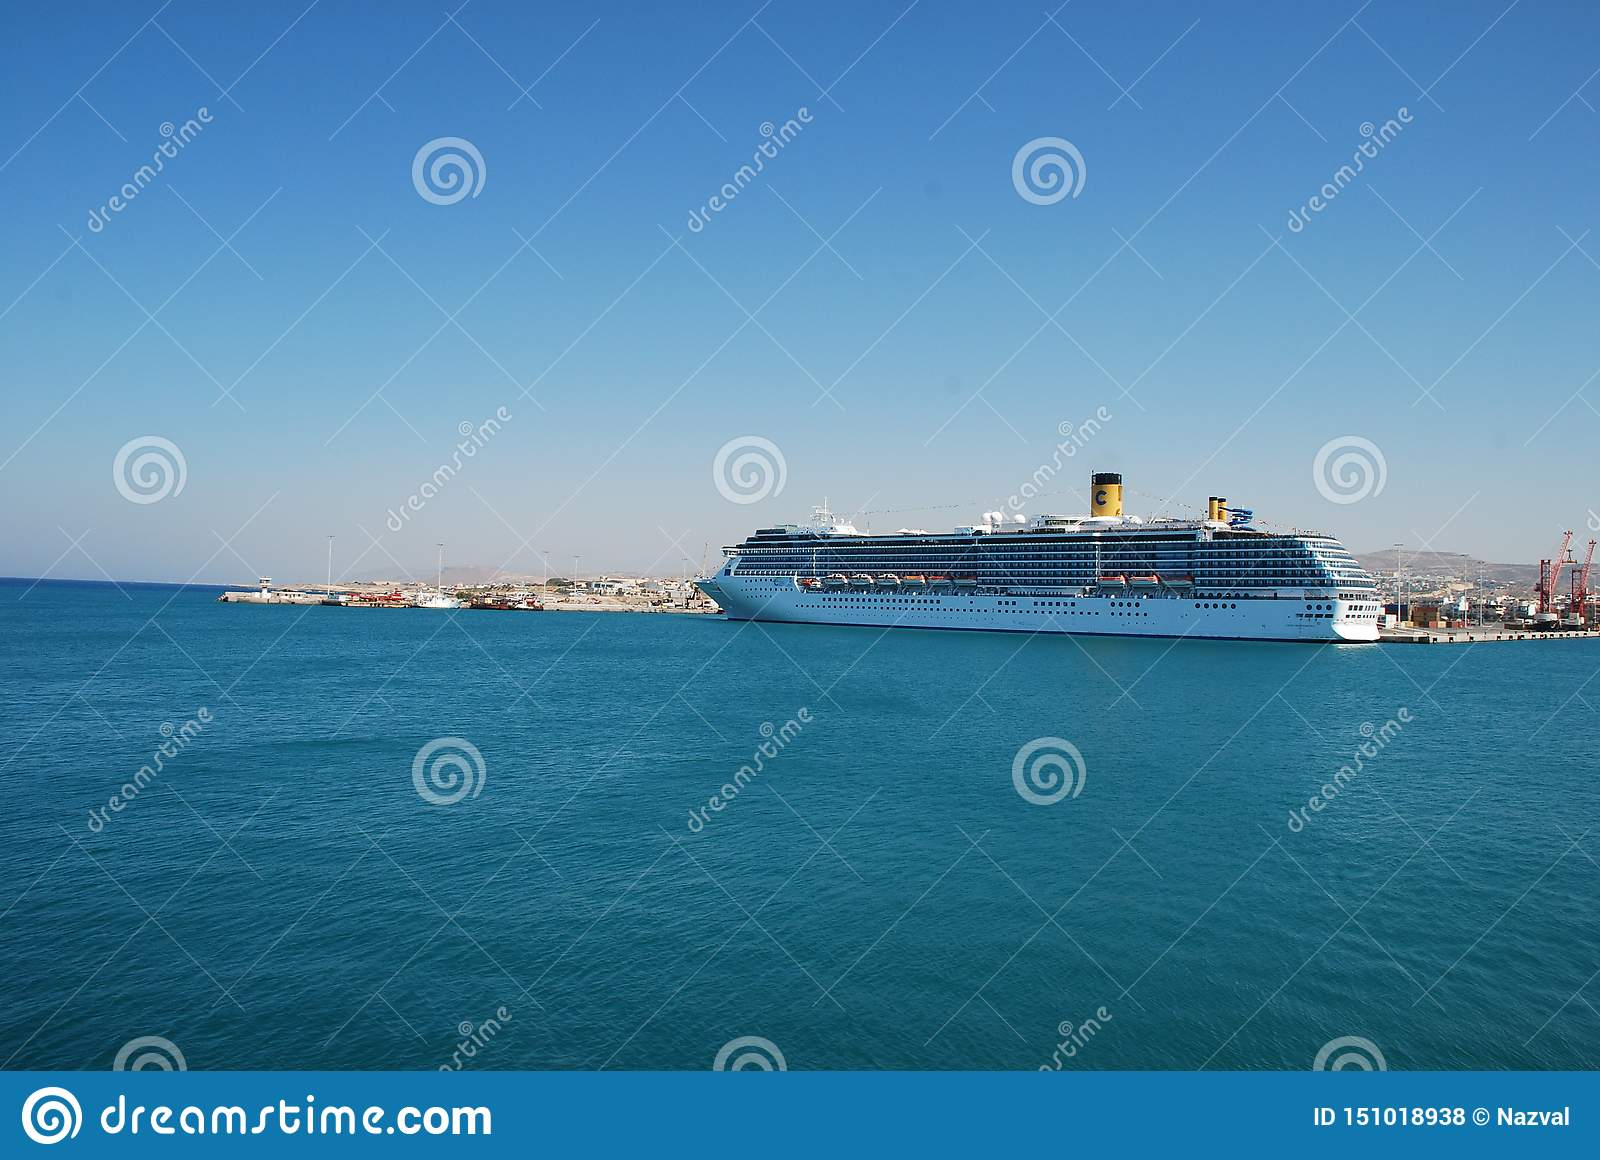 Large multideck cruise liner in the port of Heraklion on the island of Crete